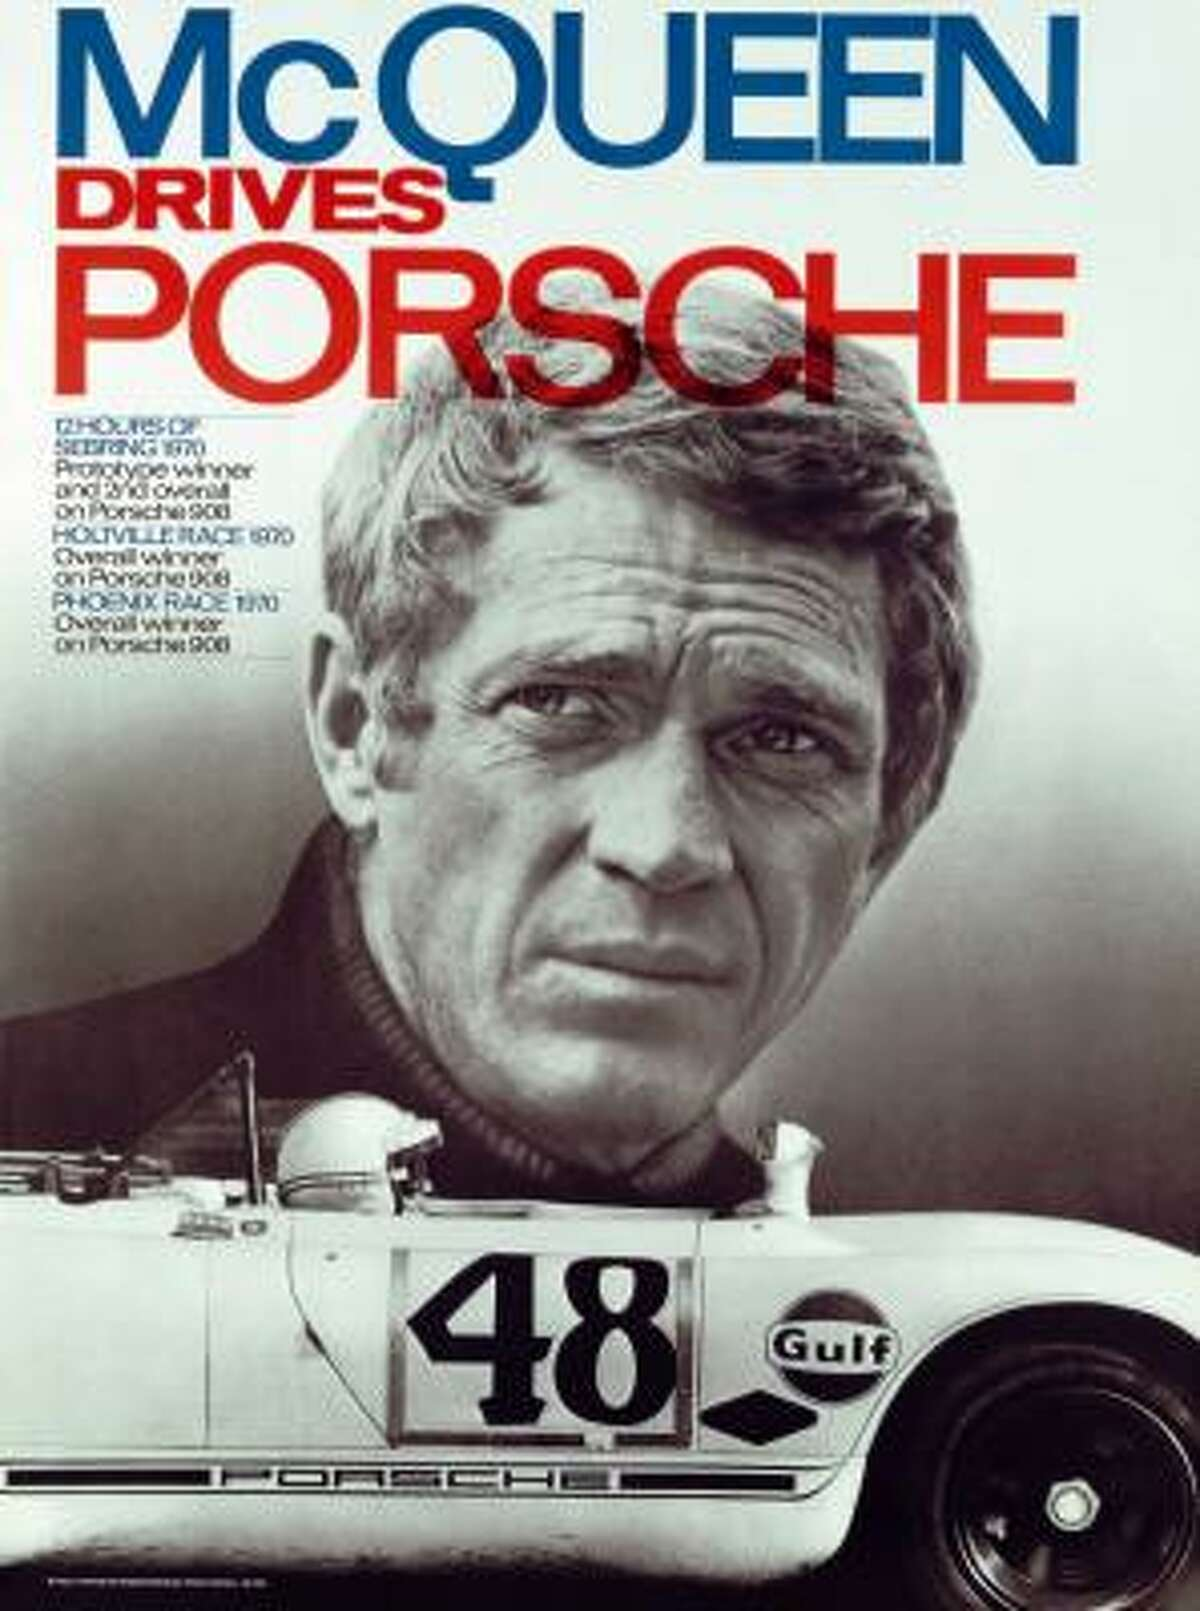 This poster, featuring the No. 48 Porsche 908, trumpets Steve McQueen's car's racing accomplishments.